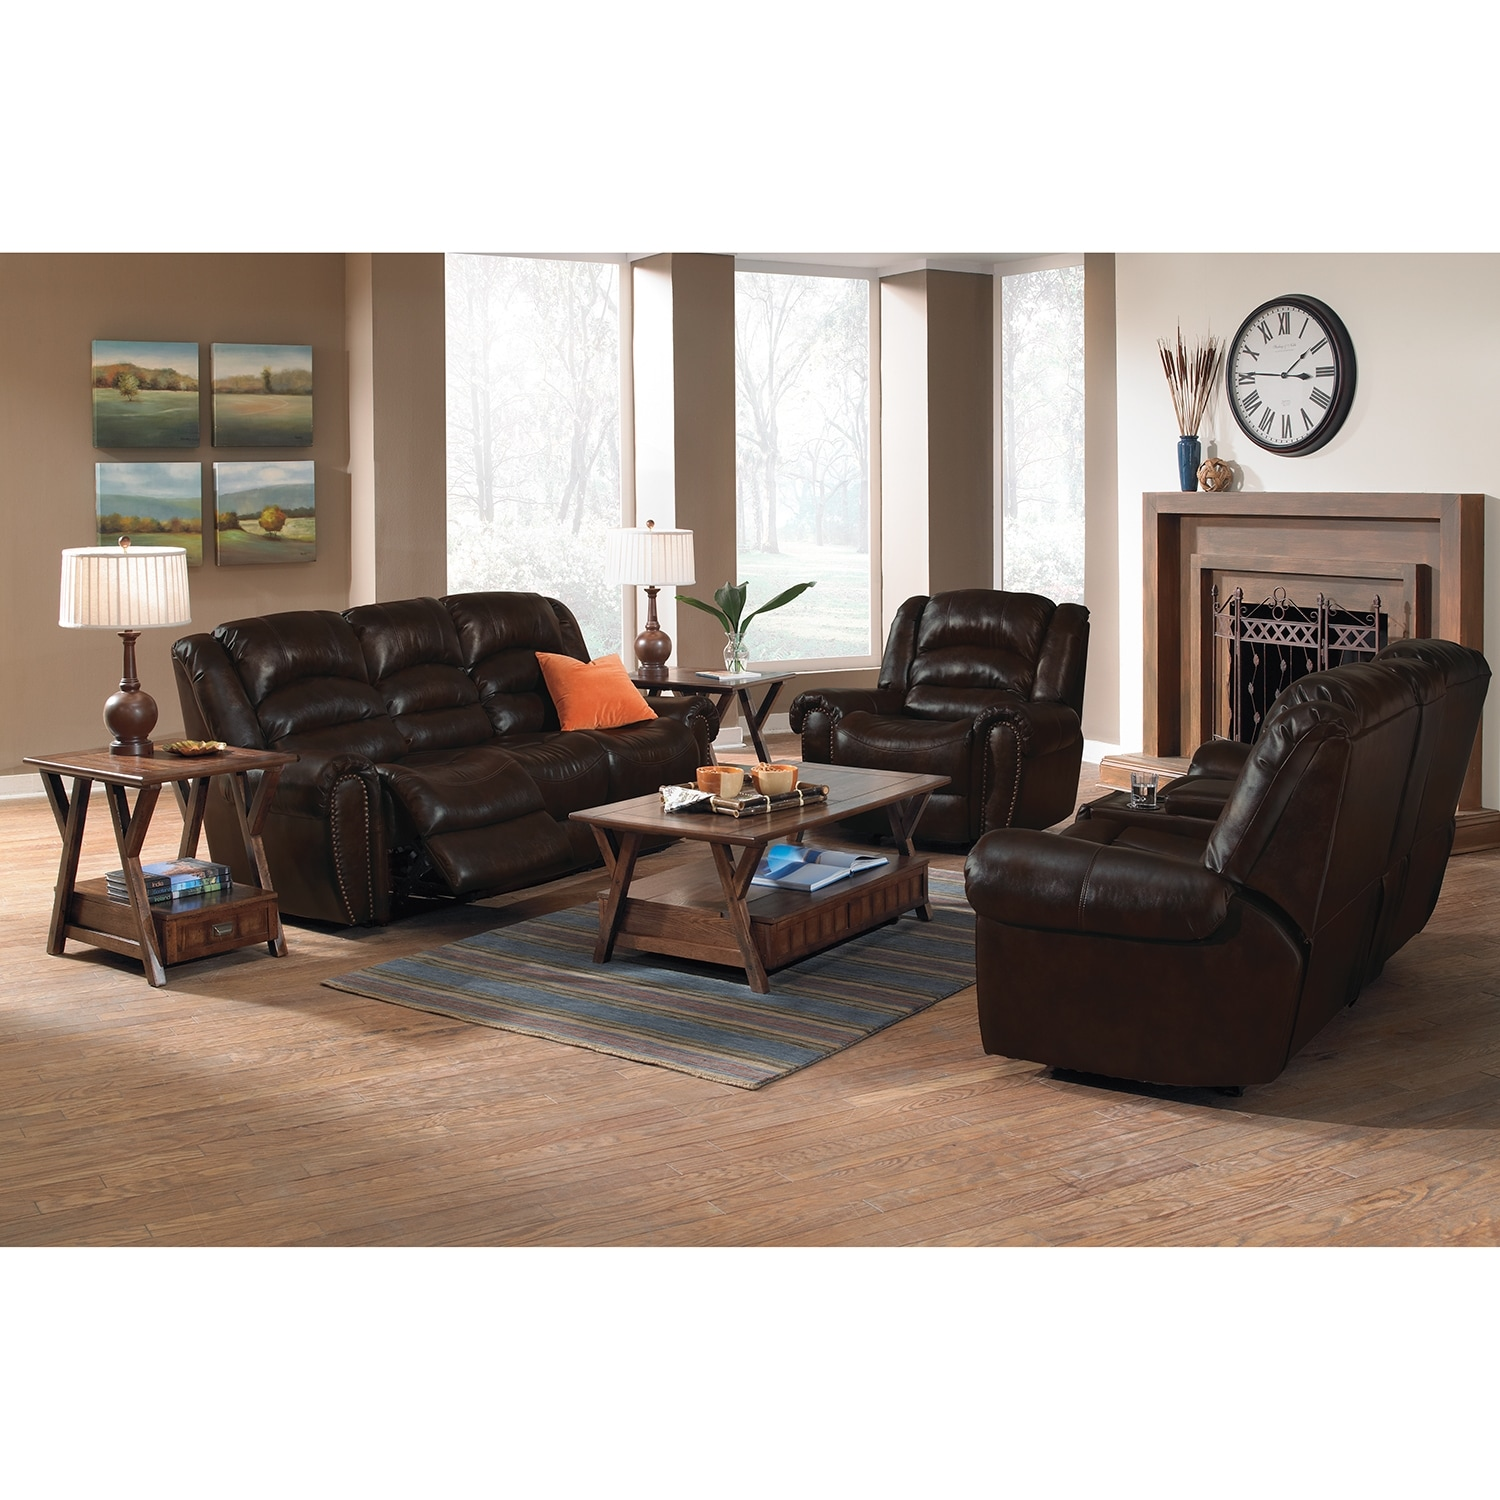 Living room furniture packages american signature furniture for Furniture 3 room package